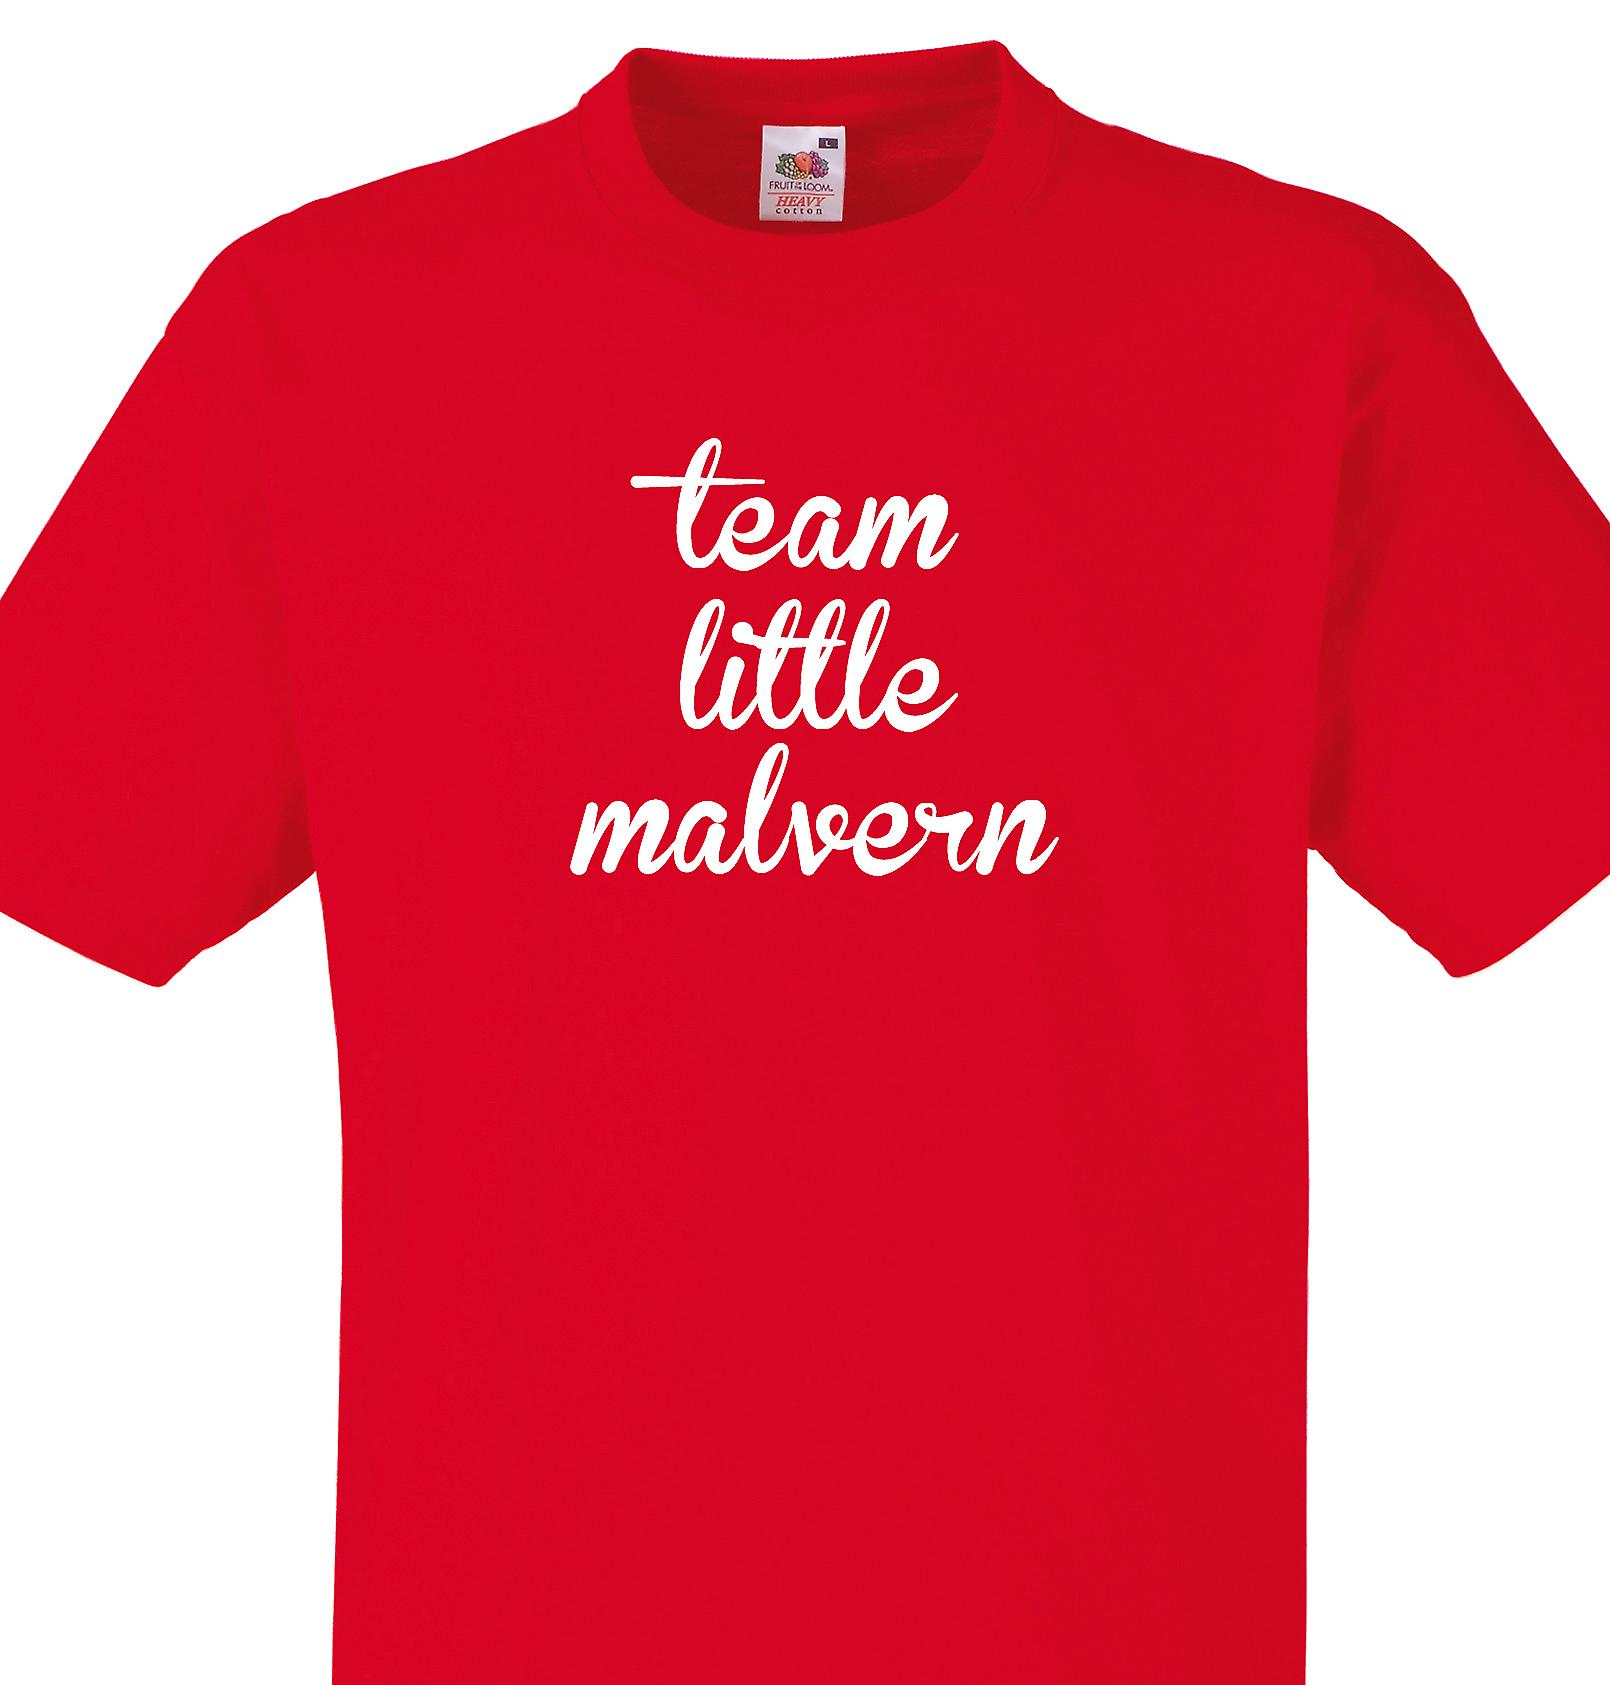 Team Little malvern Red T shirt